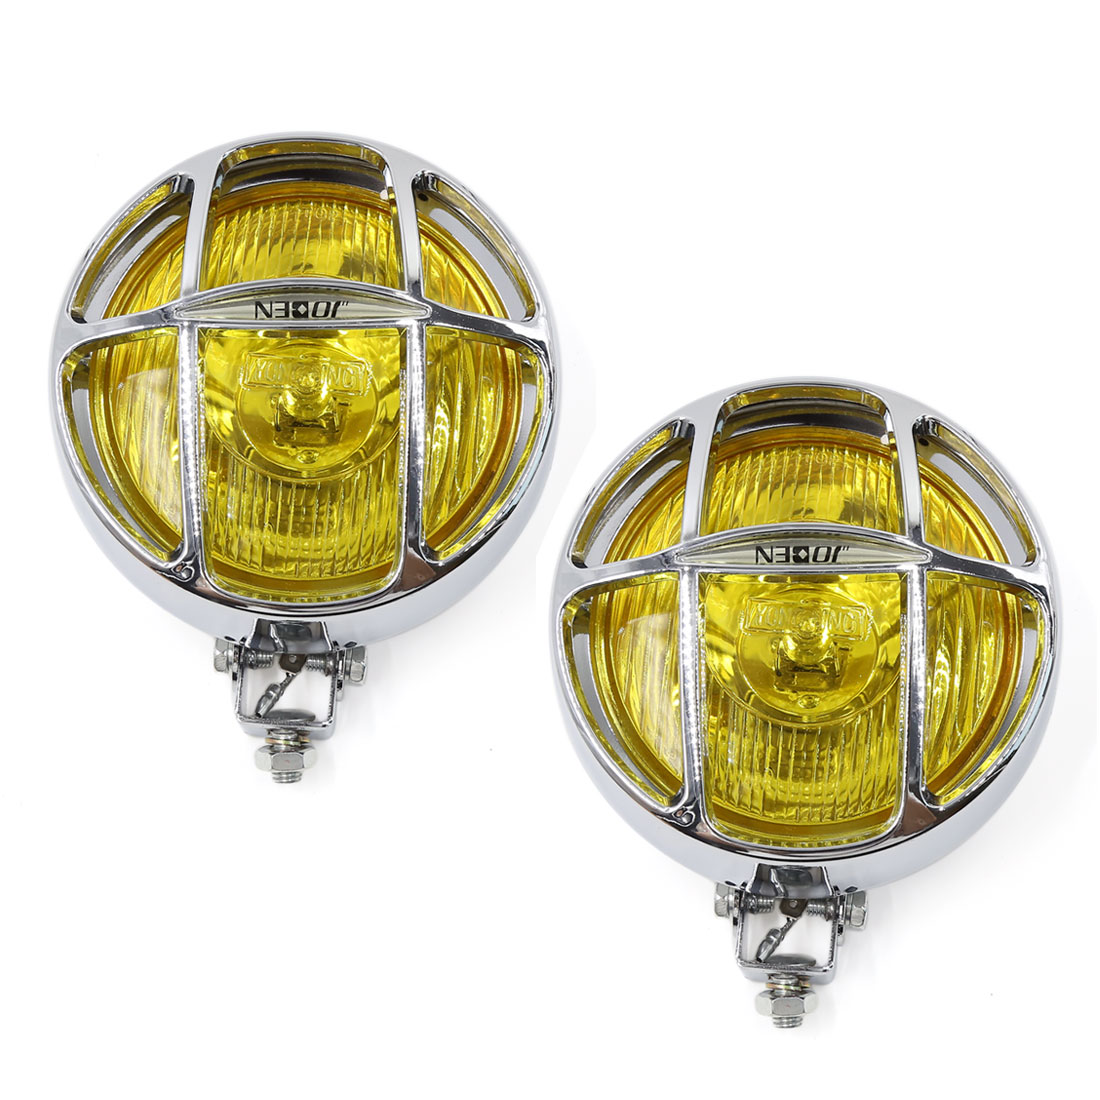 OFF Road Car H3 12V 55W Yellow LED Halogen Lamps Fog Driving Lights 2 Pcs